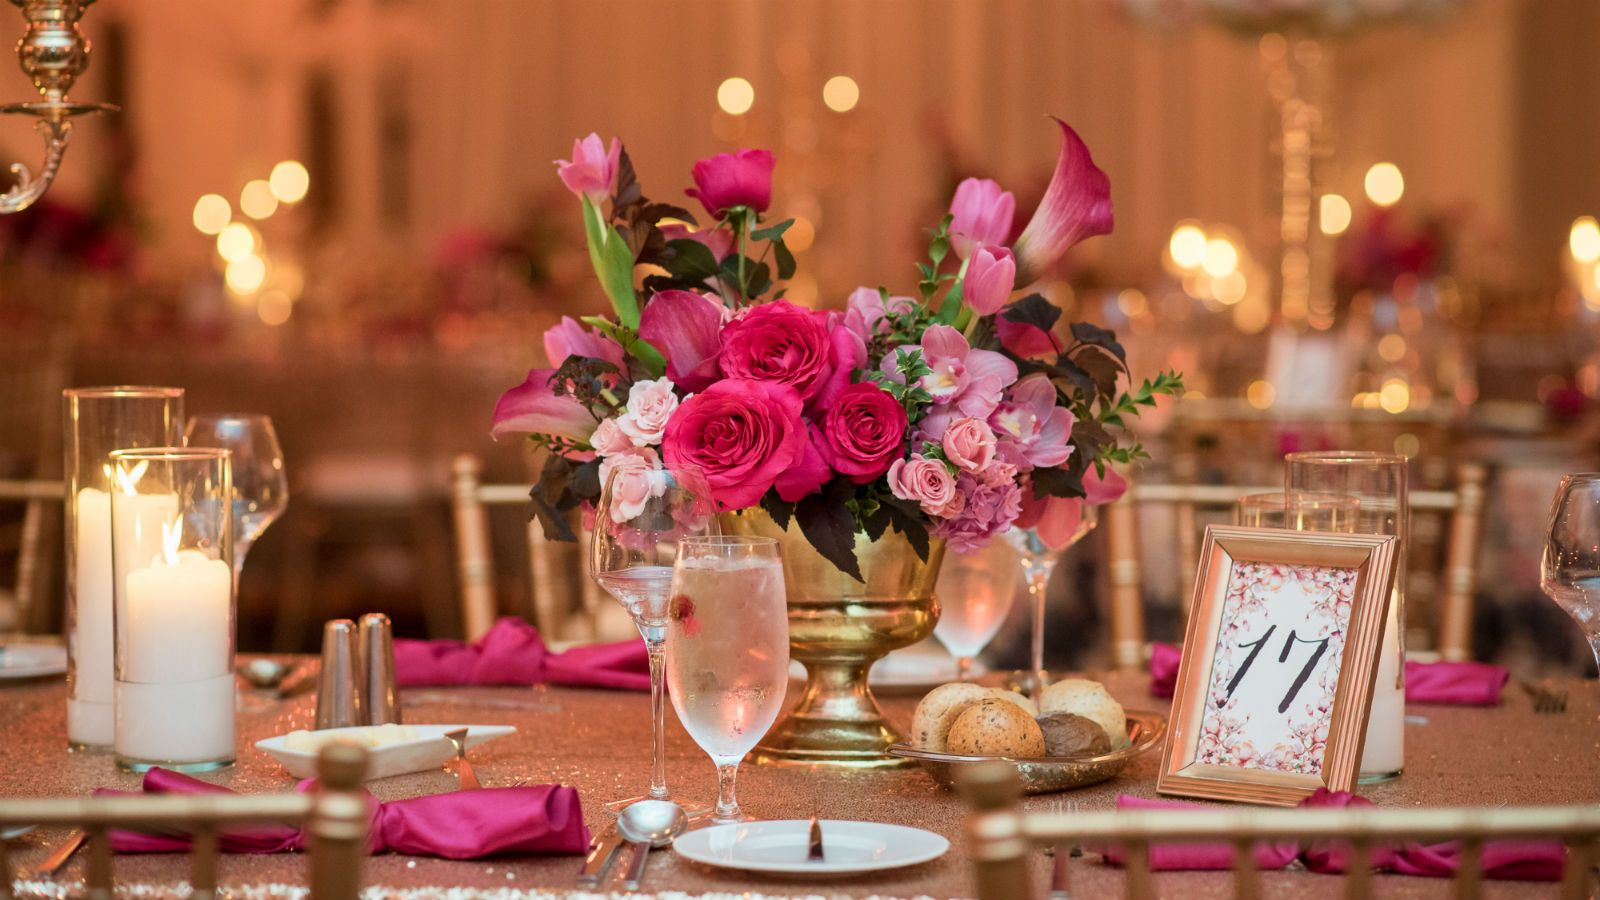 Downtown Calgary Wedding Venues - Table scape